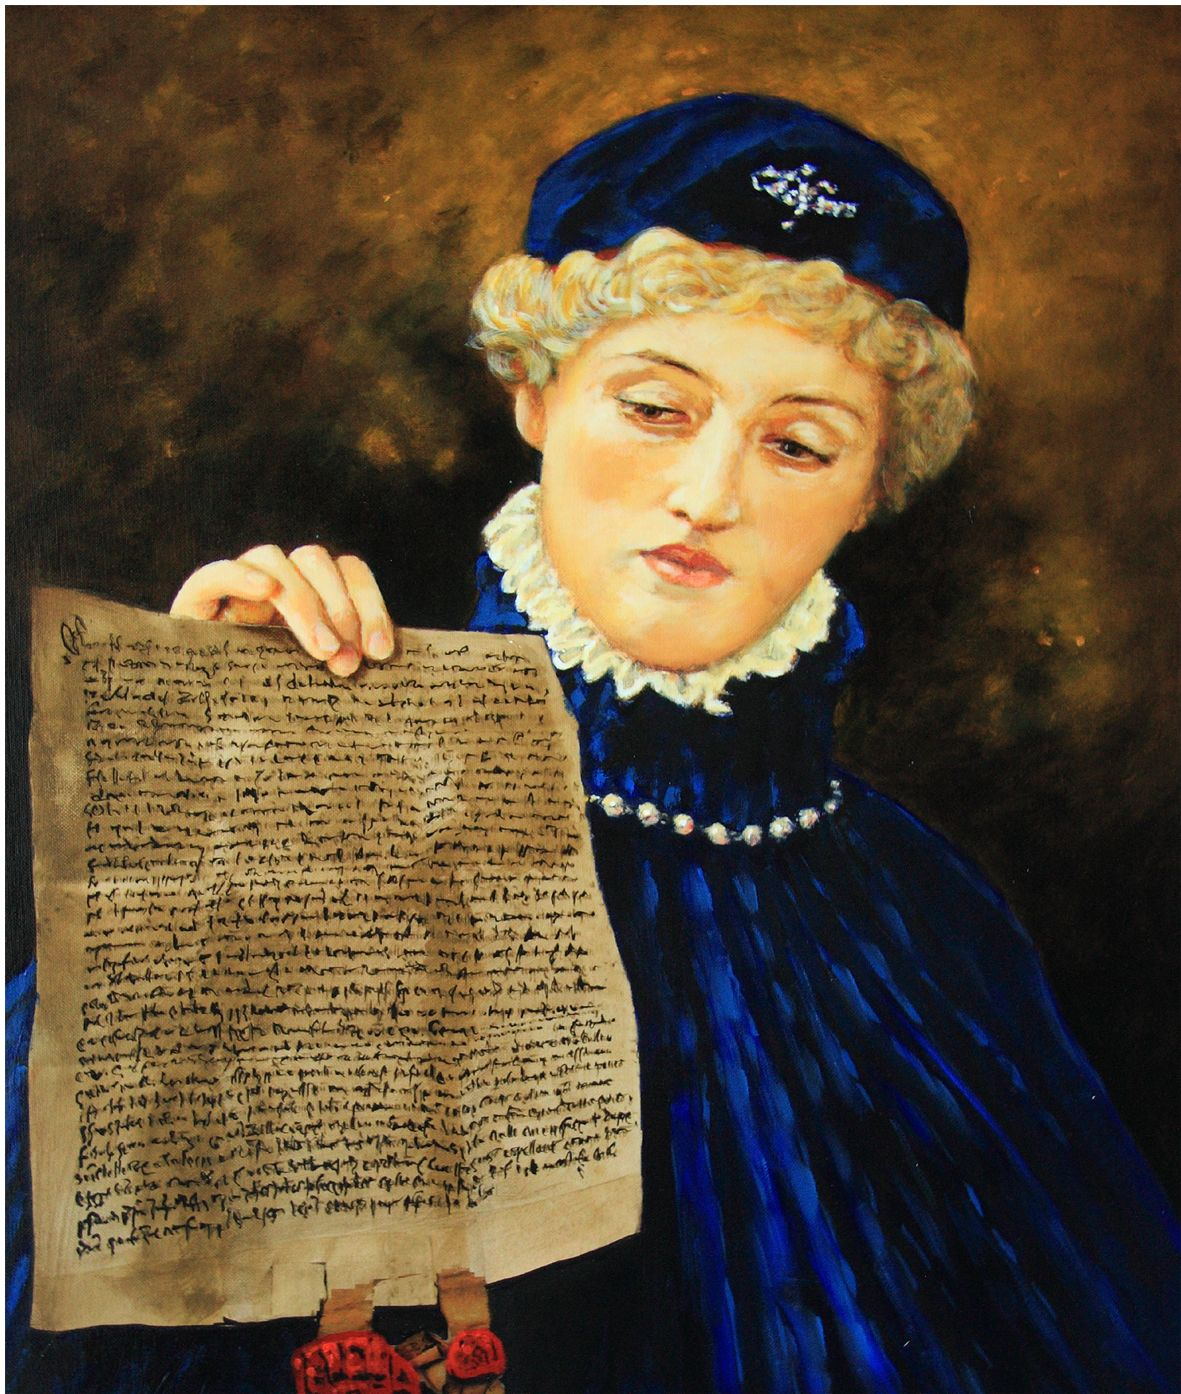 Painting of Portia, a character in The Merchant of Venice.